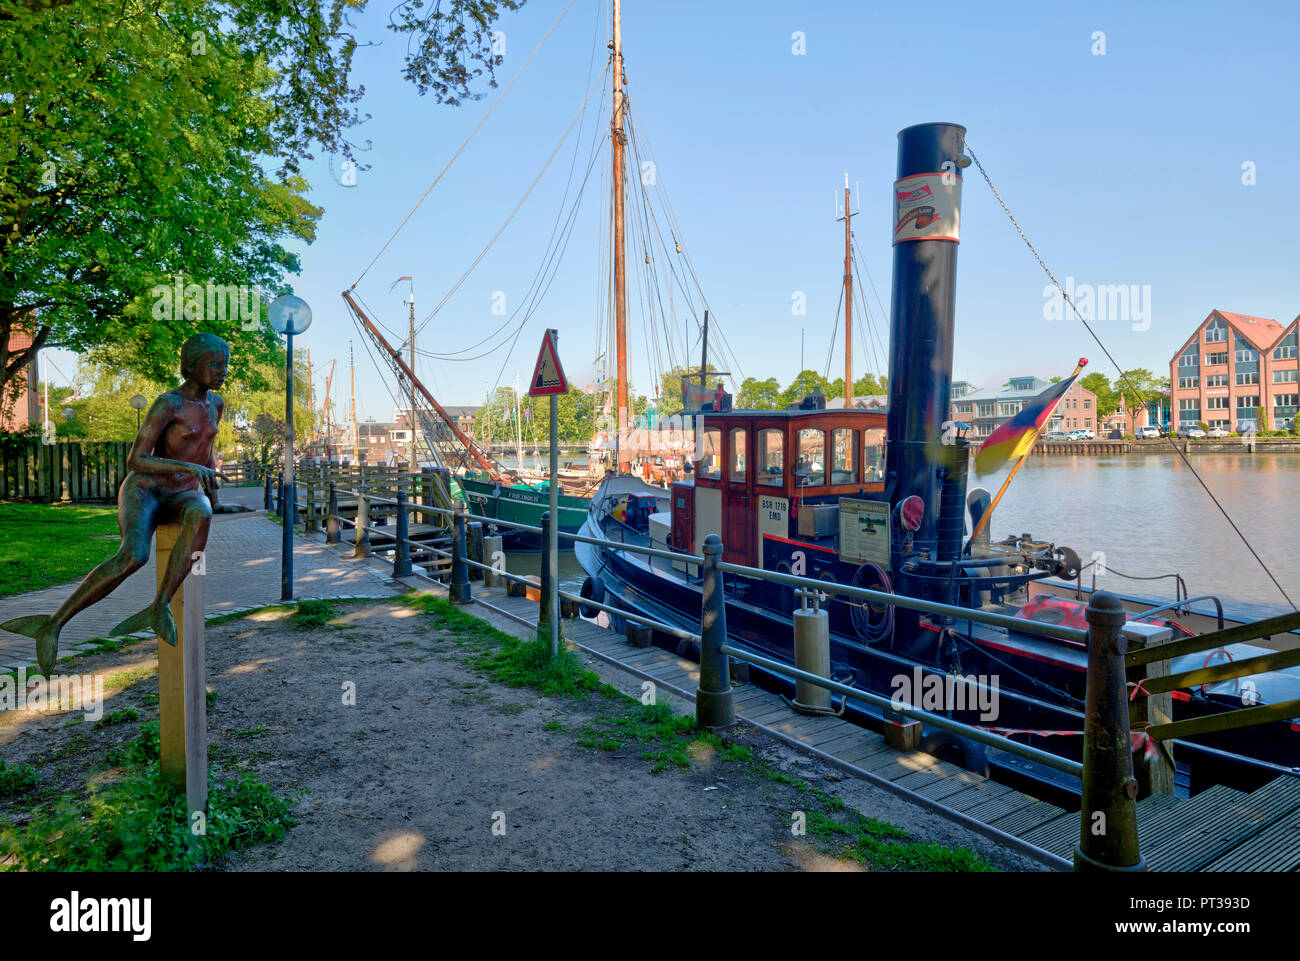 museum harbor, Schipperklootje, local organisation, traditional ships, Leer, East Frisia, Lower Saxony, Germany, Europe, - Stock Image